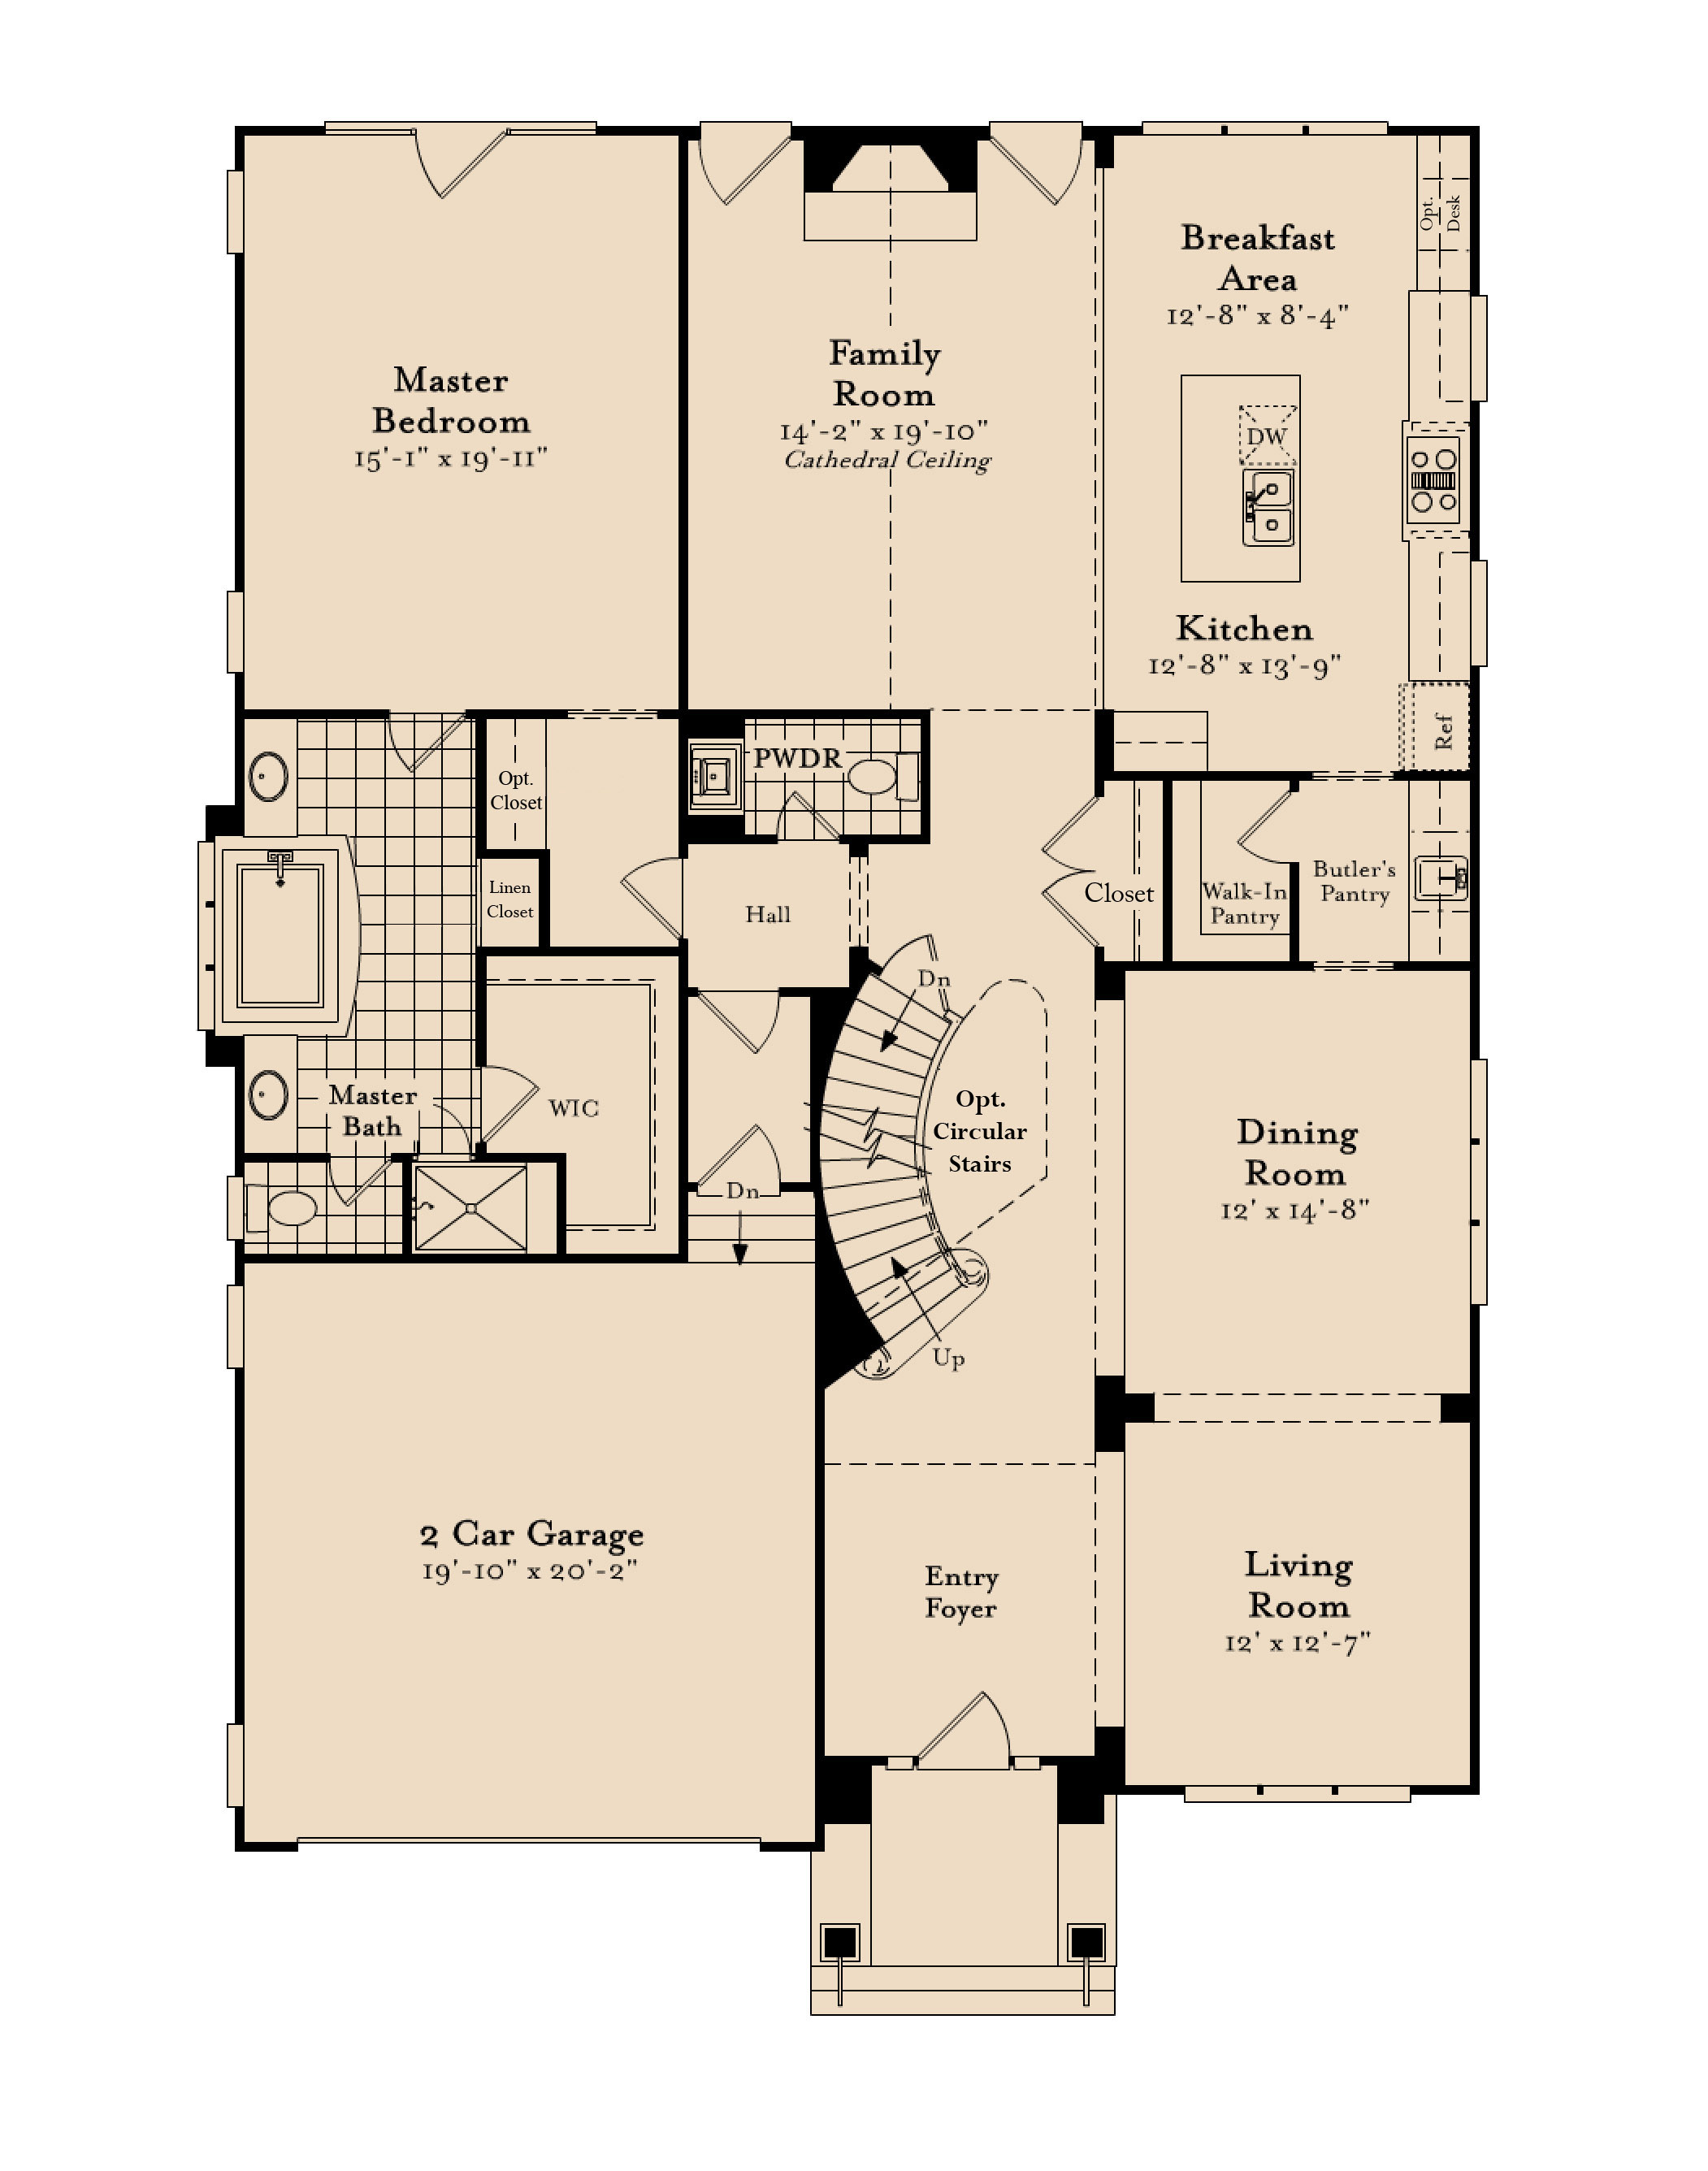 The first floor plan for the Alexandria model home.